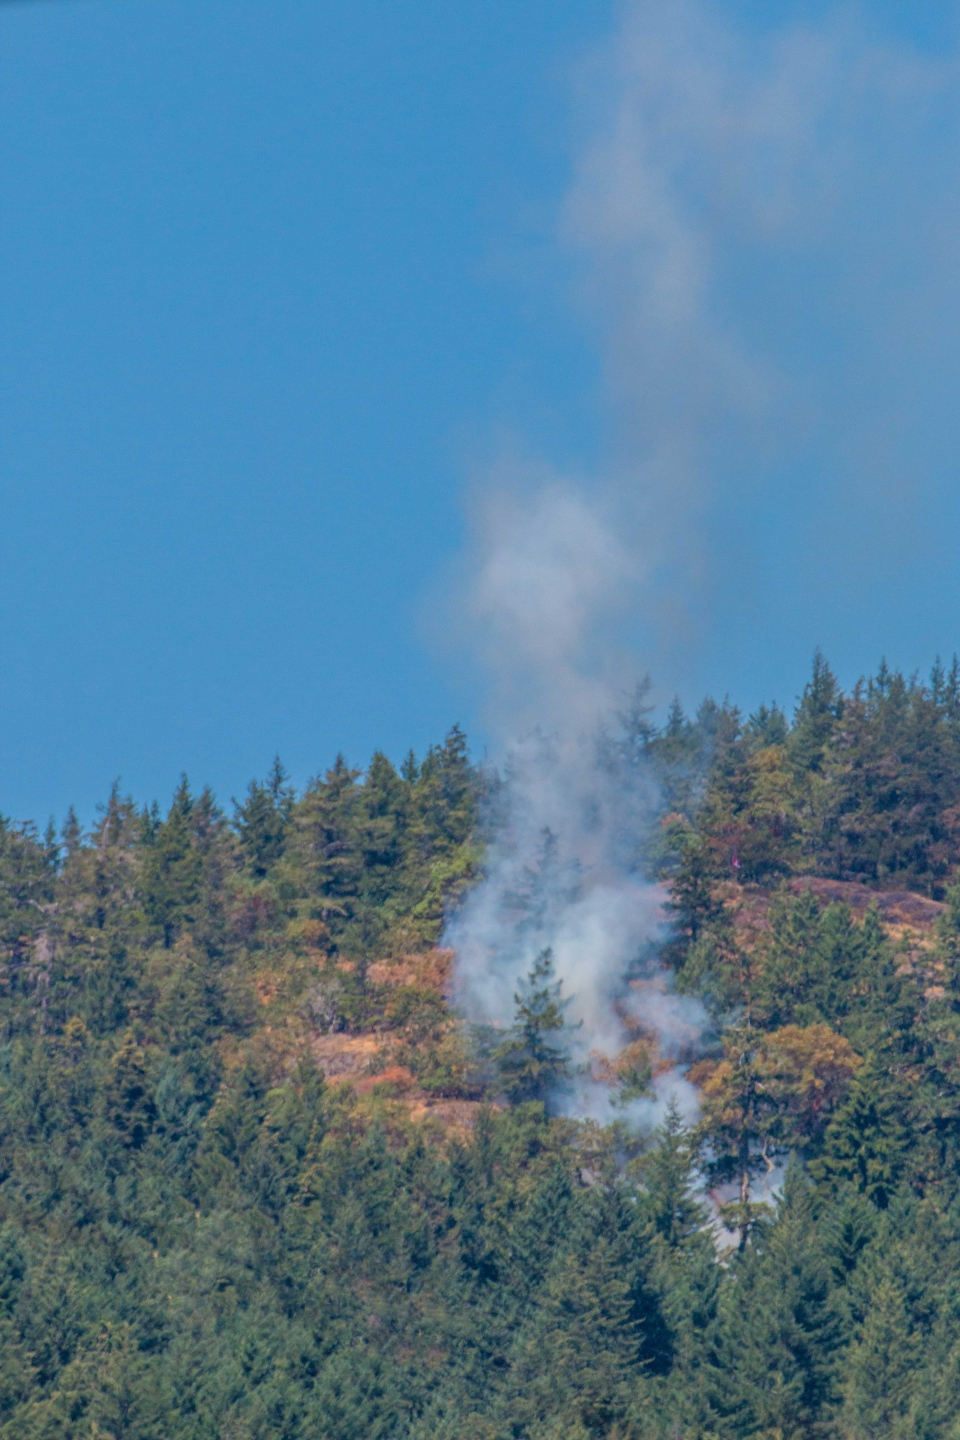 Smoke is seen rising from a brush fire on Skirt Mountain near Langford. Aug. 1, 2018. (Courtesy Sarah White)